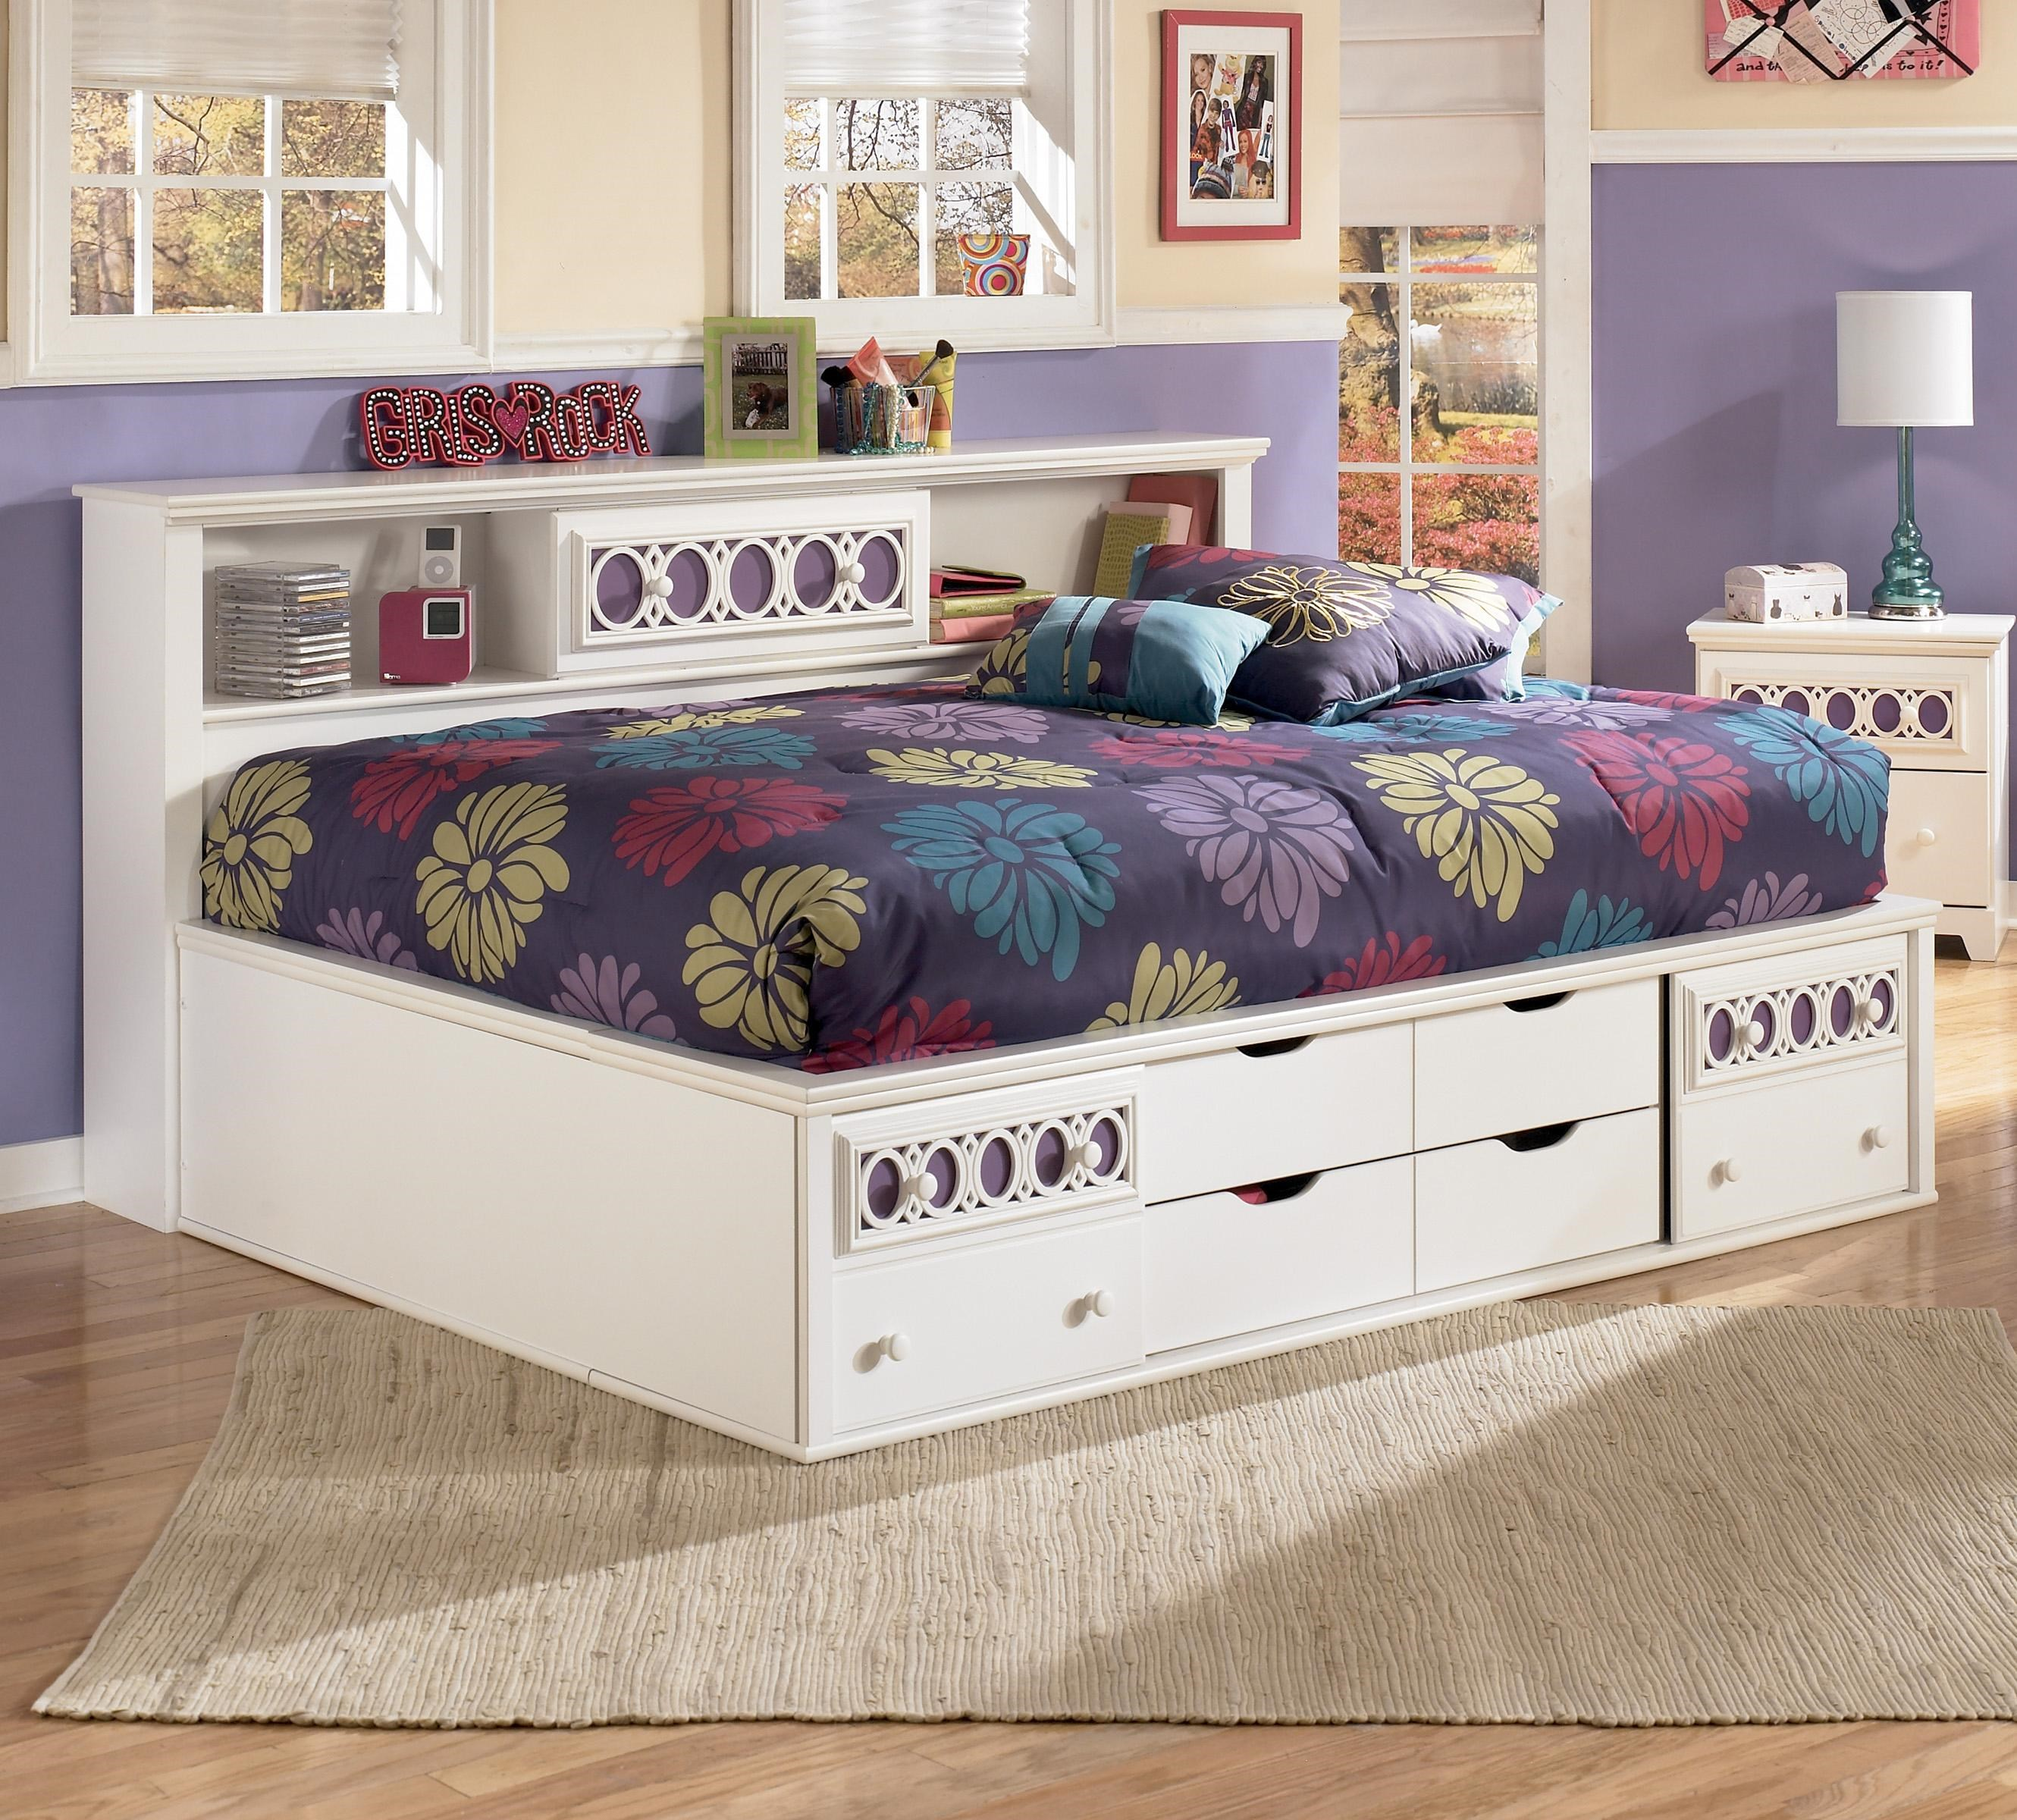 Zayley Full Bedside Bookcase Daybed With Customizable Color Panels By Signature Design By Ashley At Miller Home